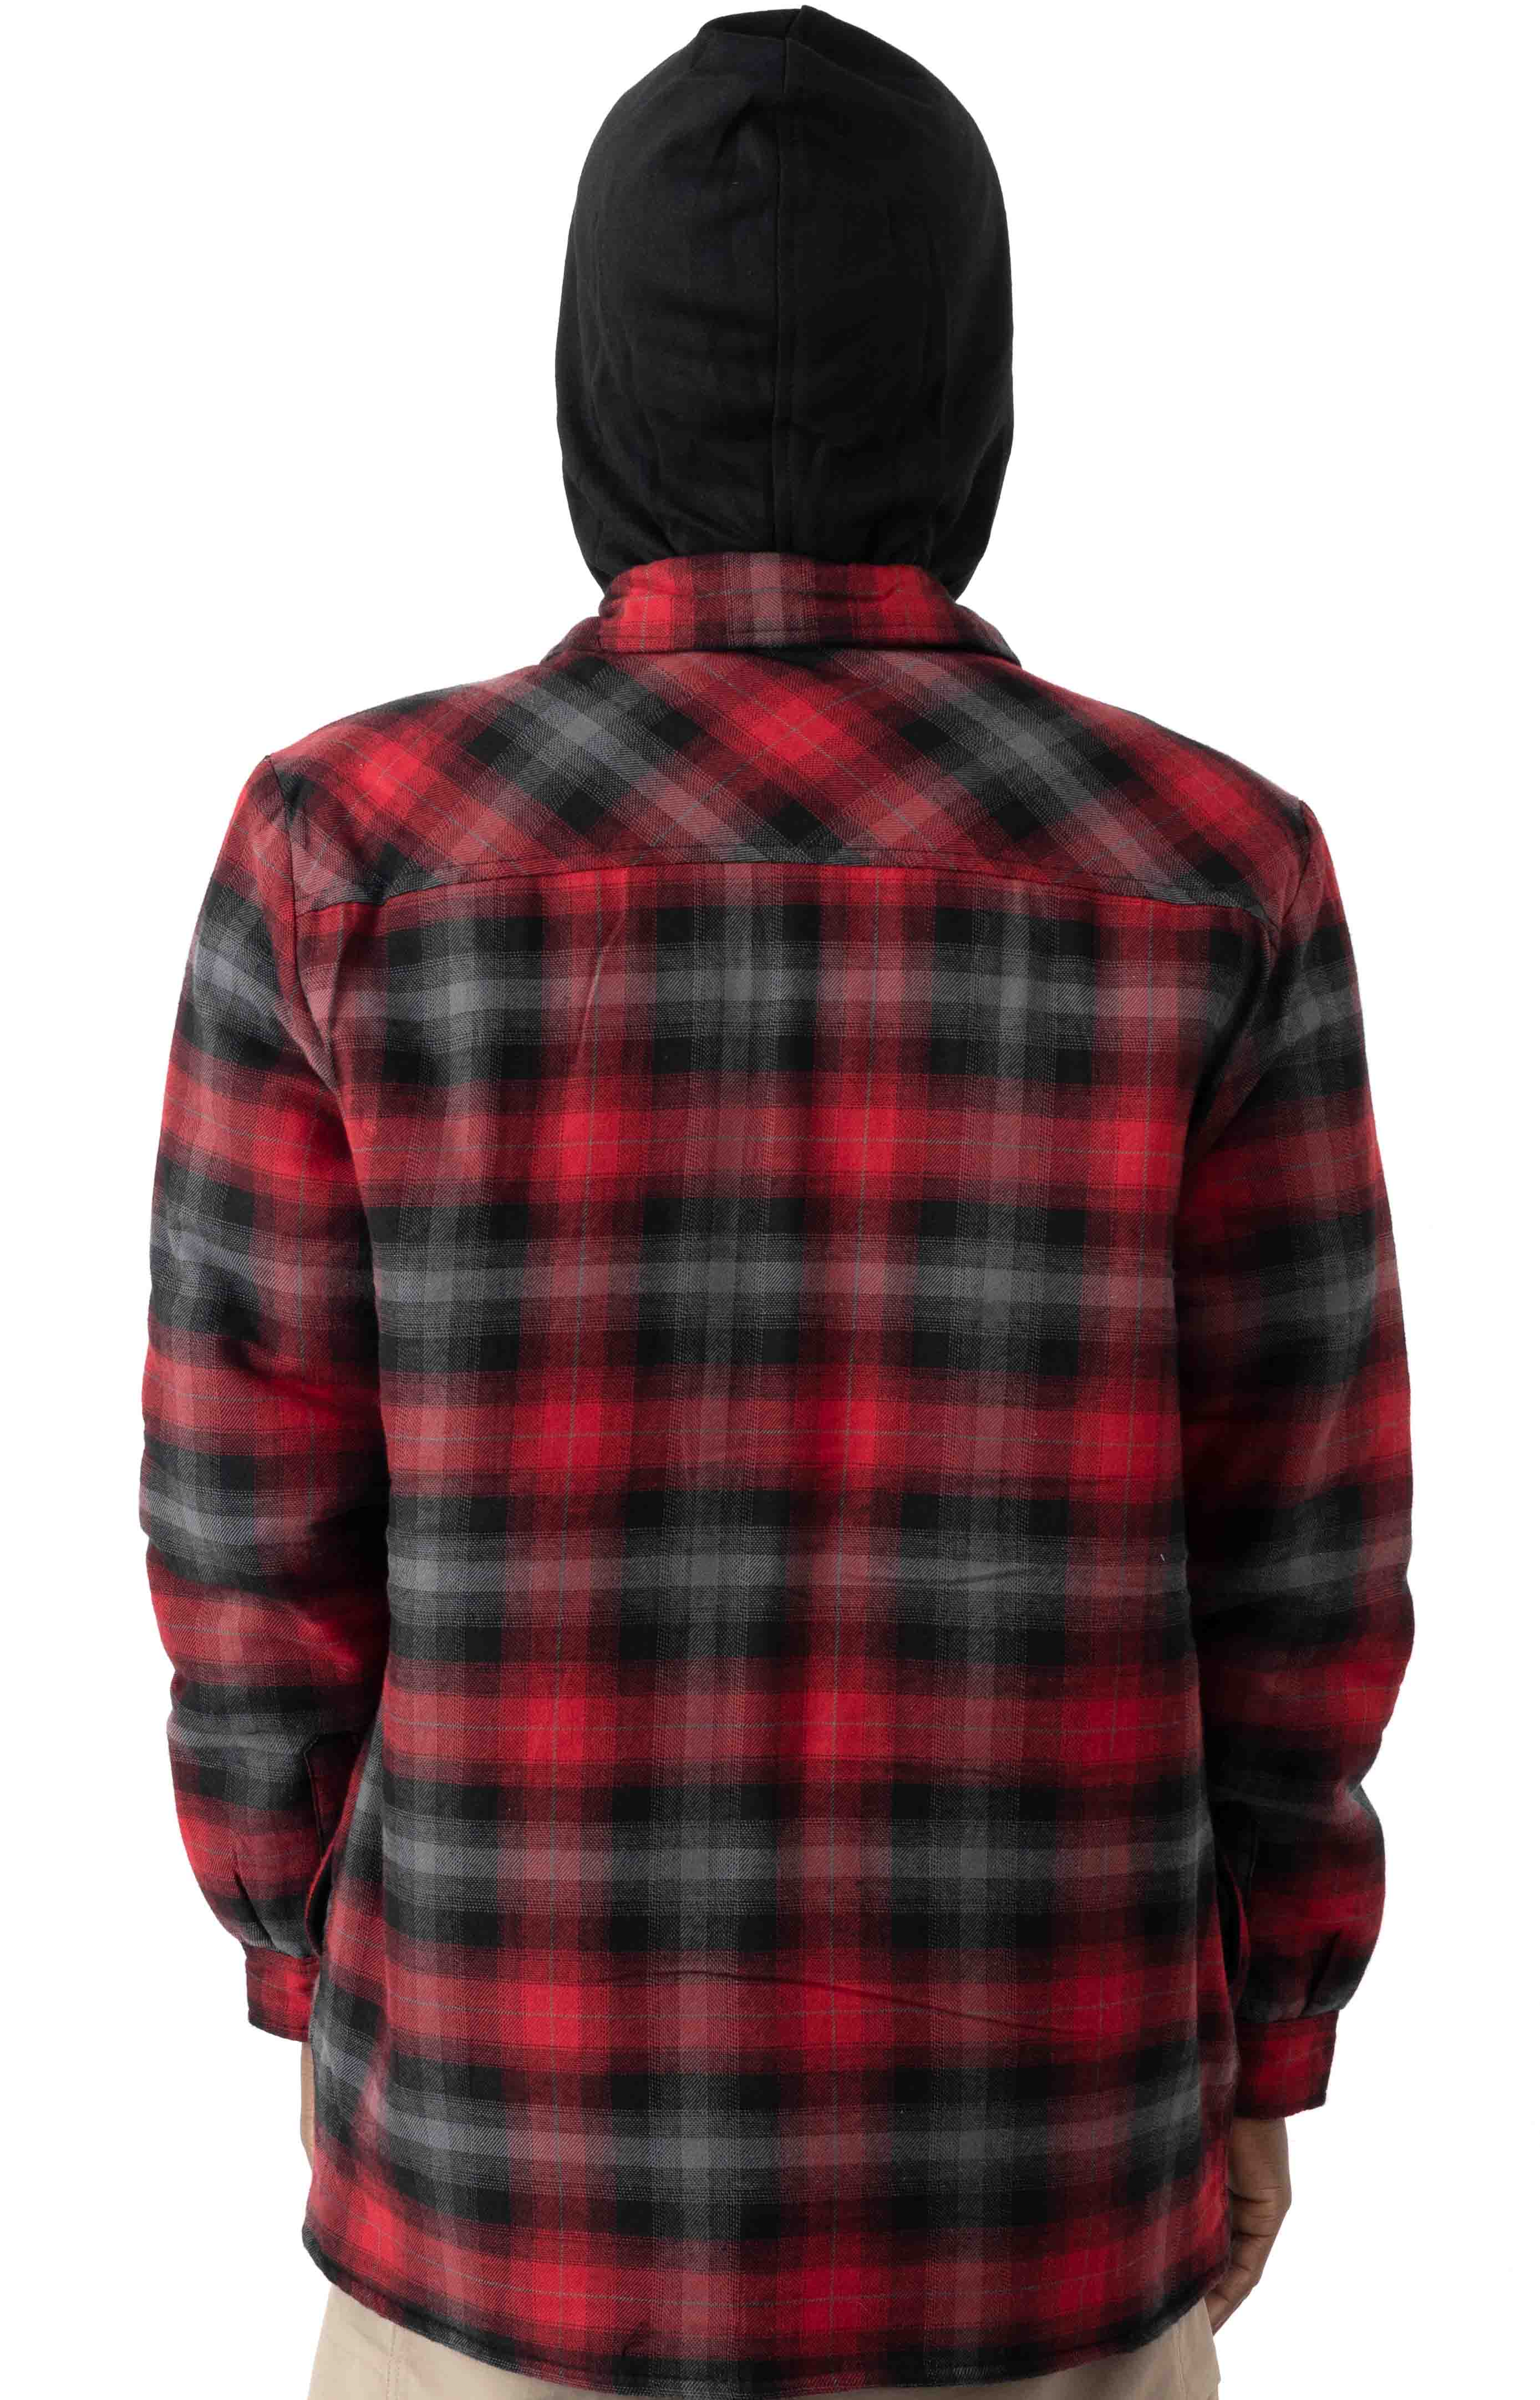 (TJ211INP1) Fleece Hooded Flannel Shirt Jacket with Hydroshield - English Red Black Ombre P 3